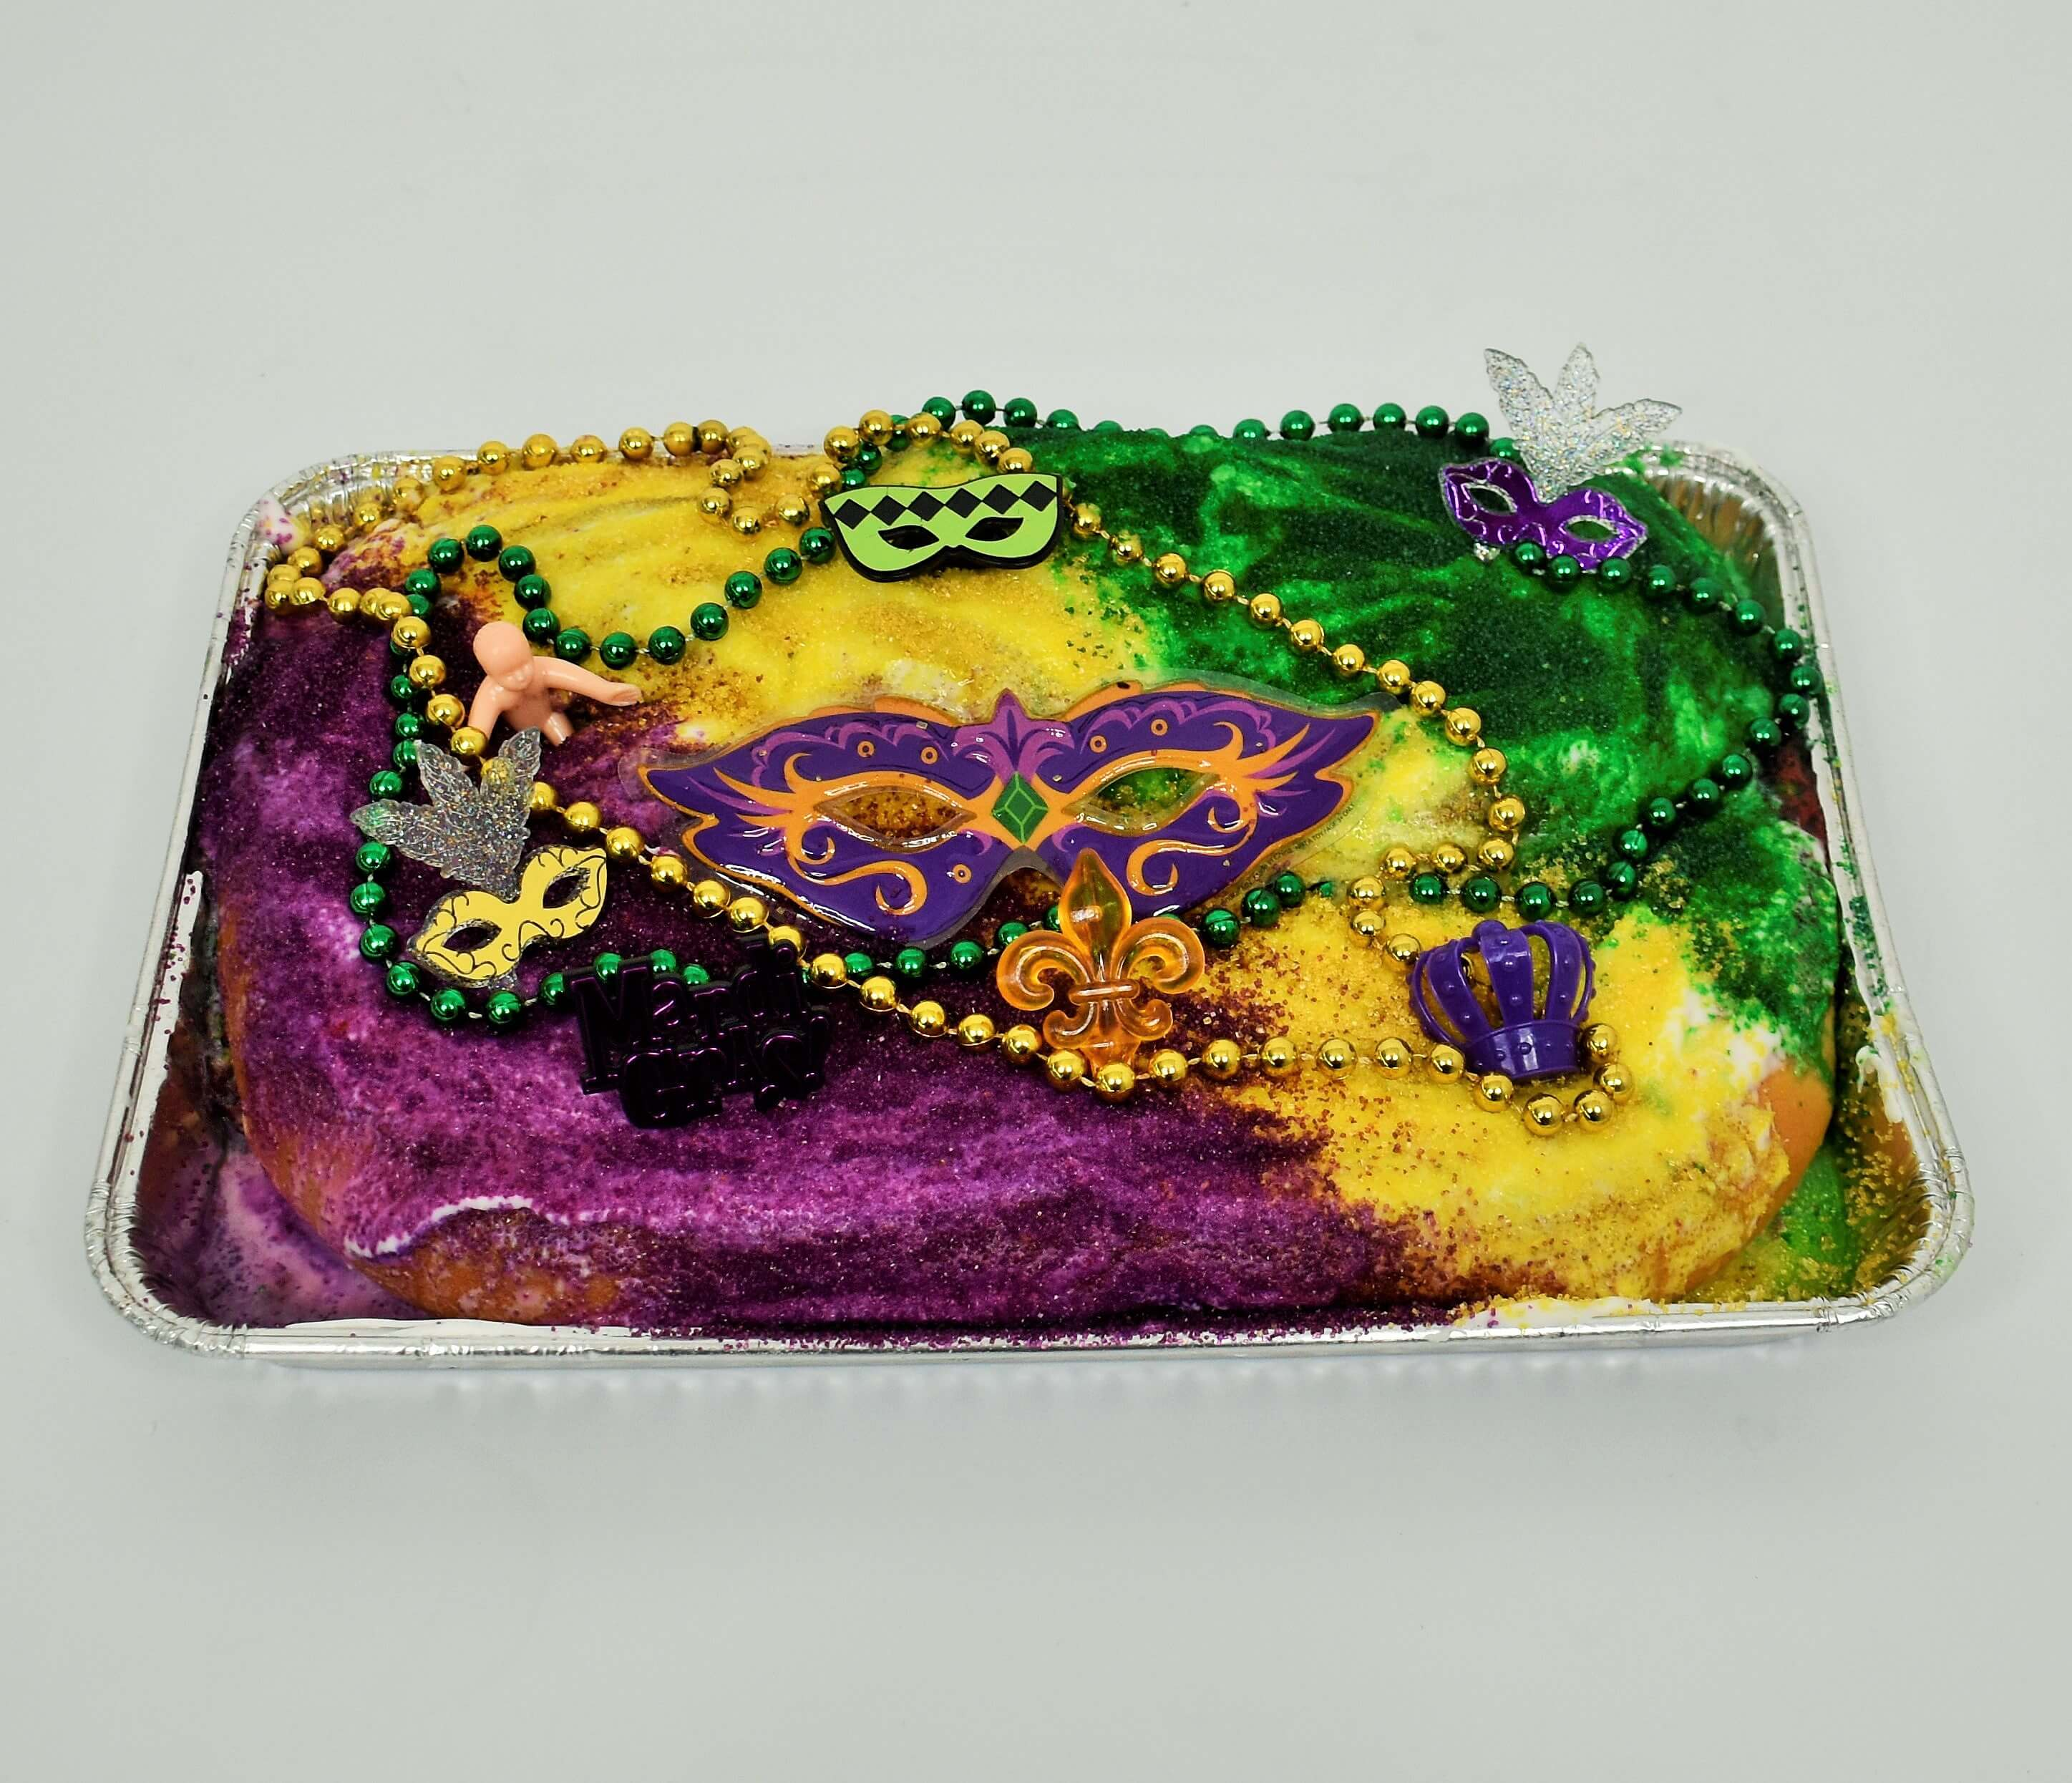 King Cake With Rasberry Cheese Filling